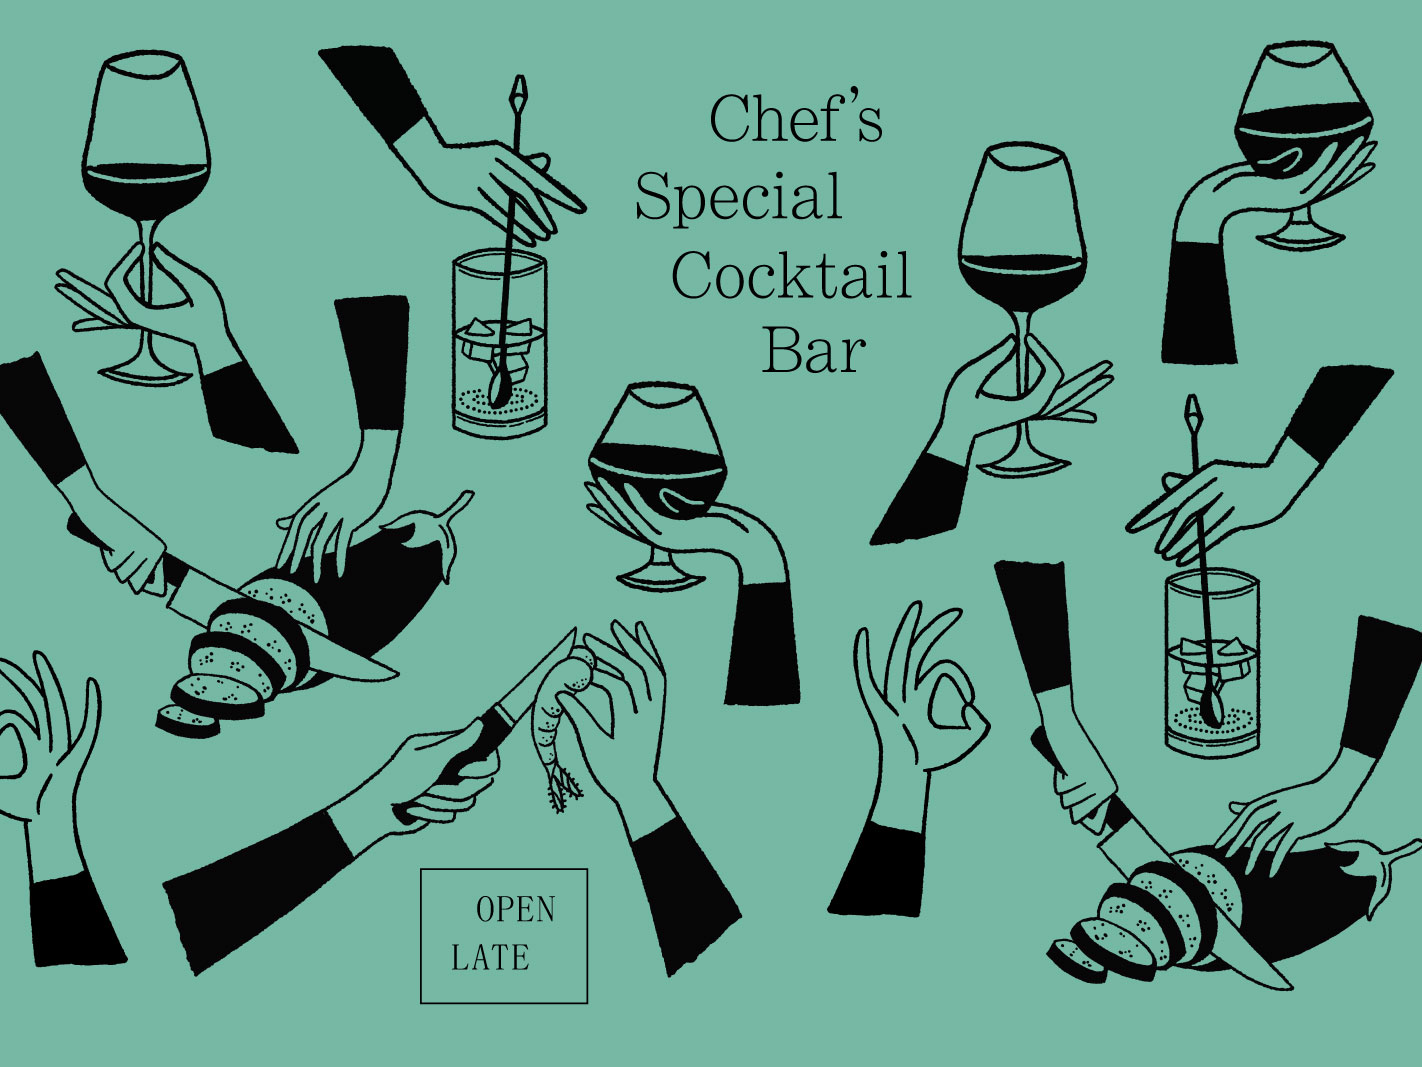 Chef's Special Cocktail Bar